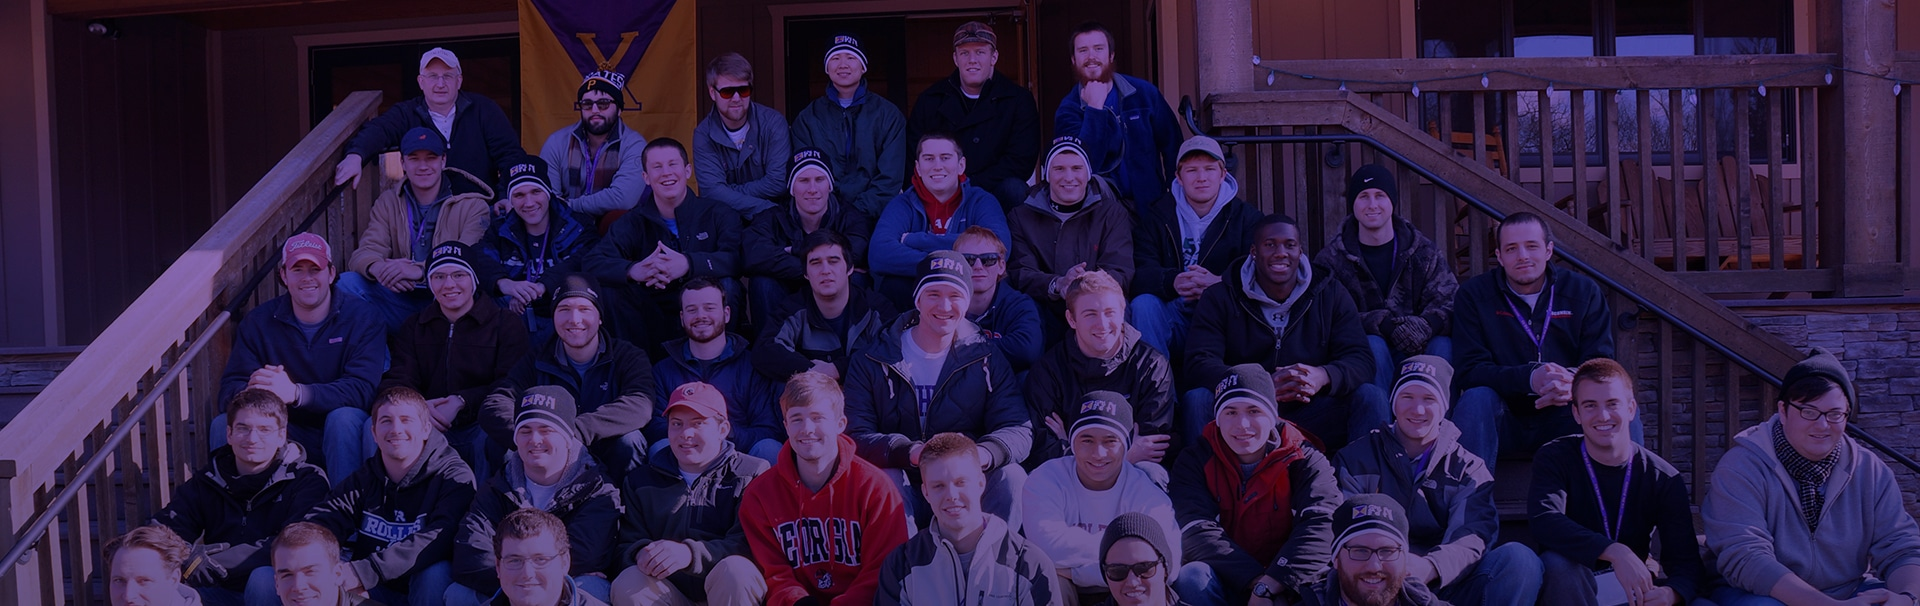 Group of fraternity brothers on steps